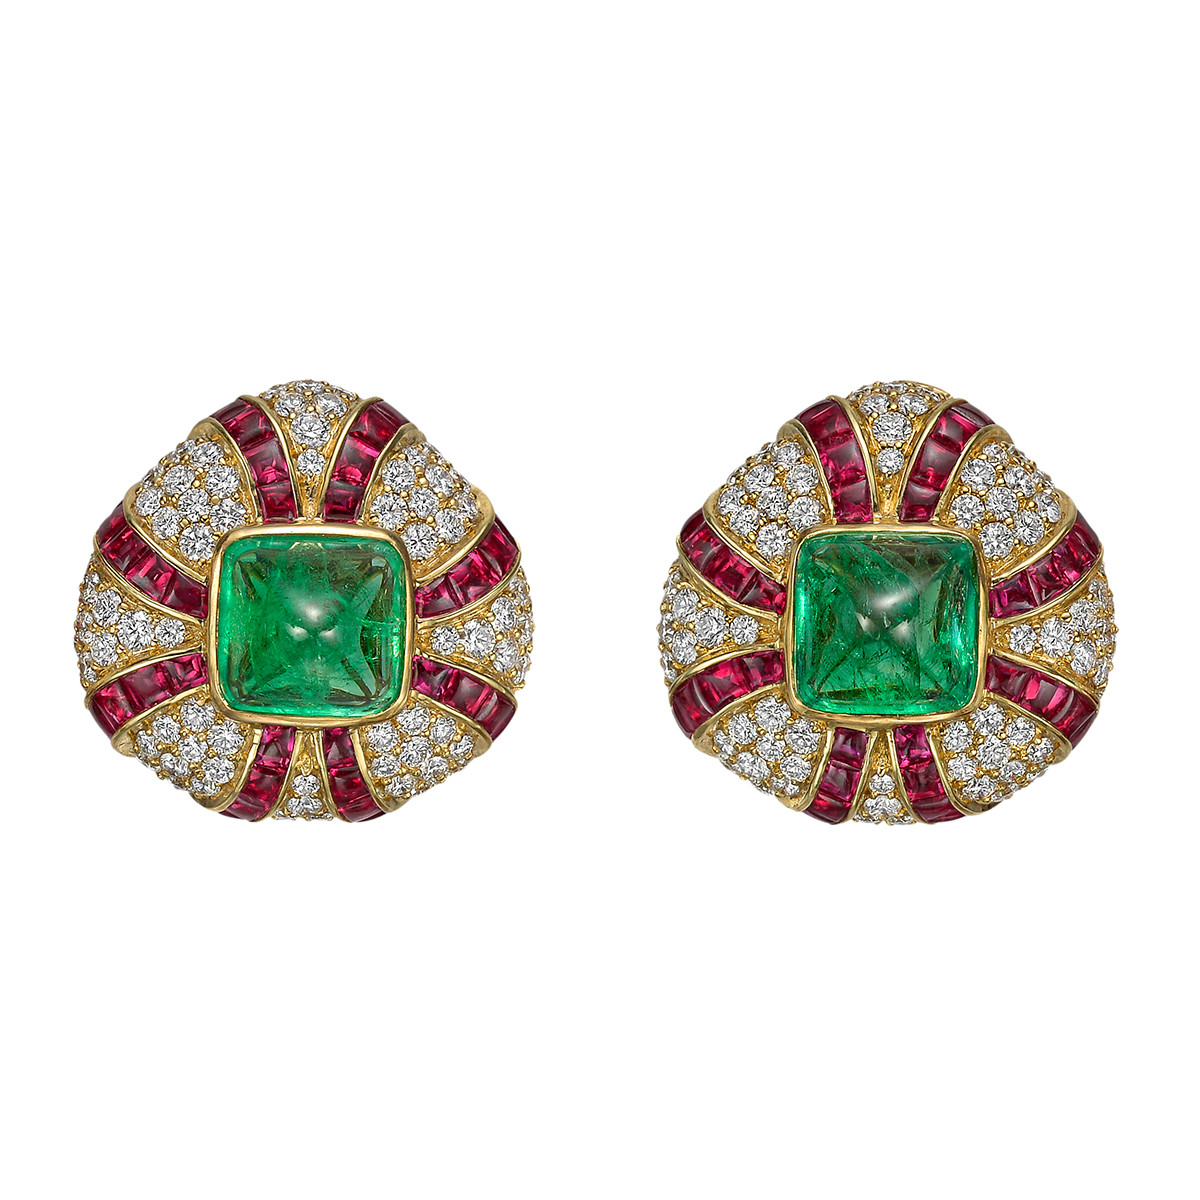 Emerald, Ruby & Diamond Domed Earclips